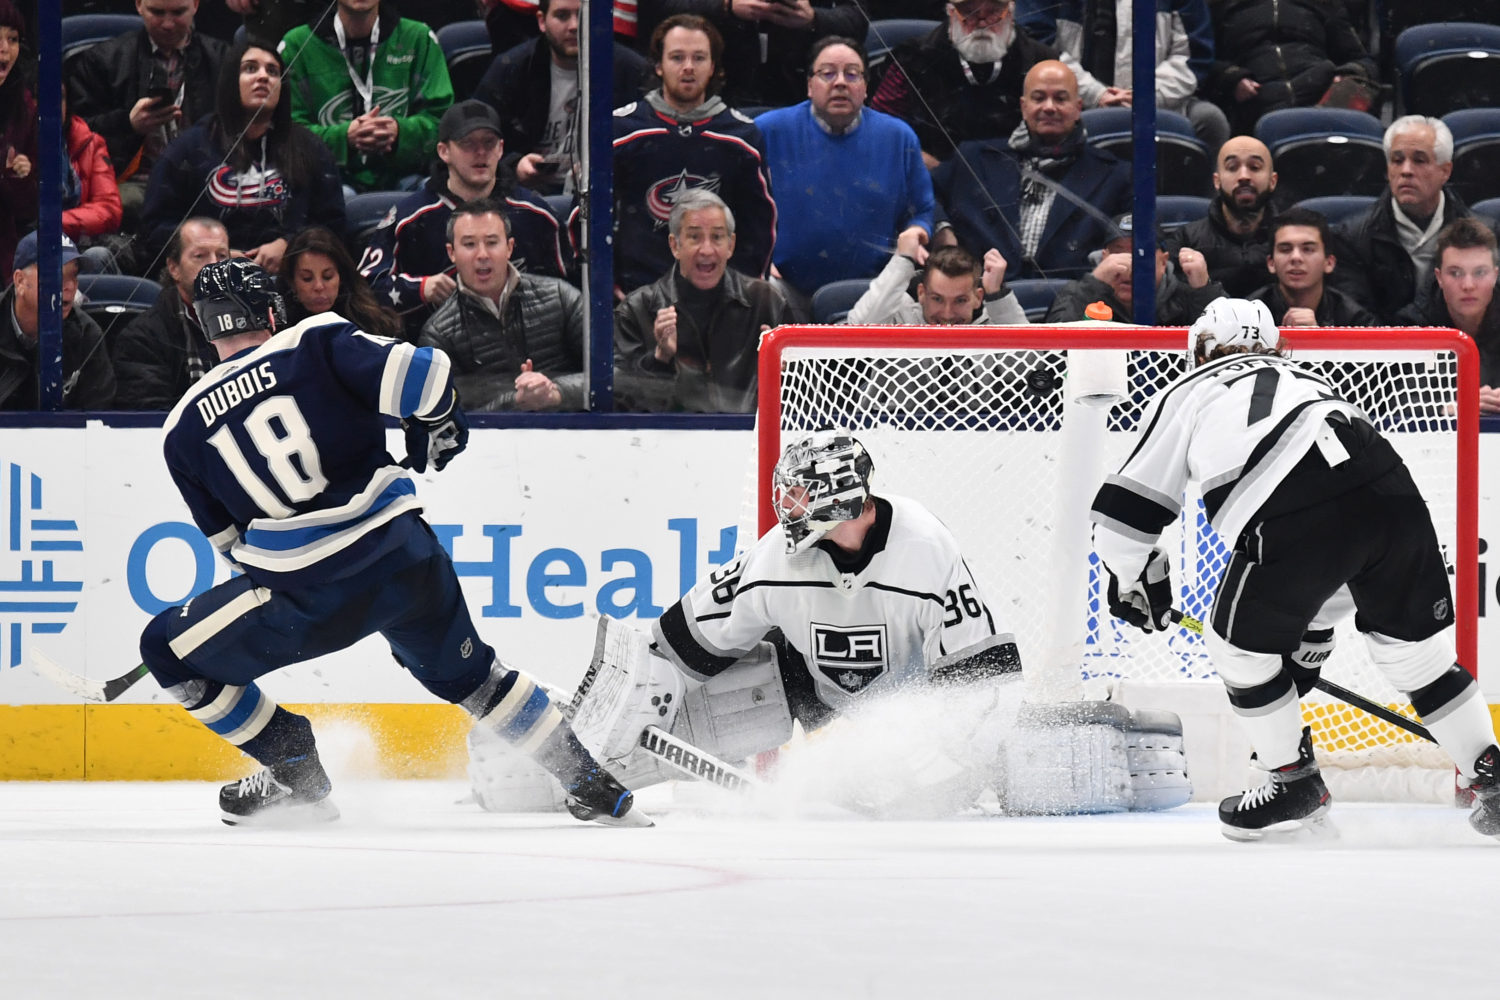 Kings are in more games; one-goal games remaining elusive - LA Kings Insider